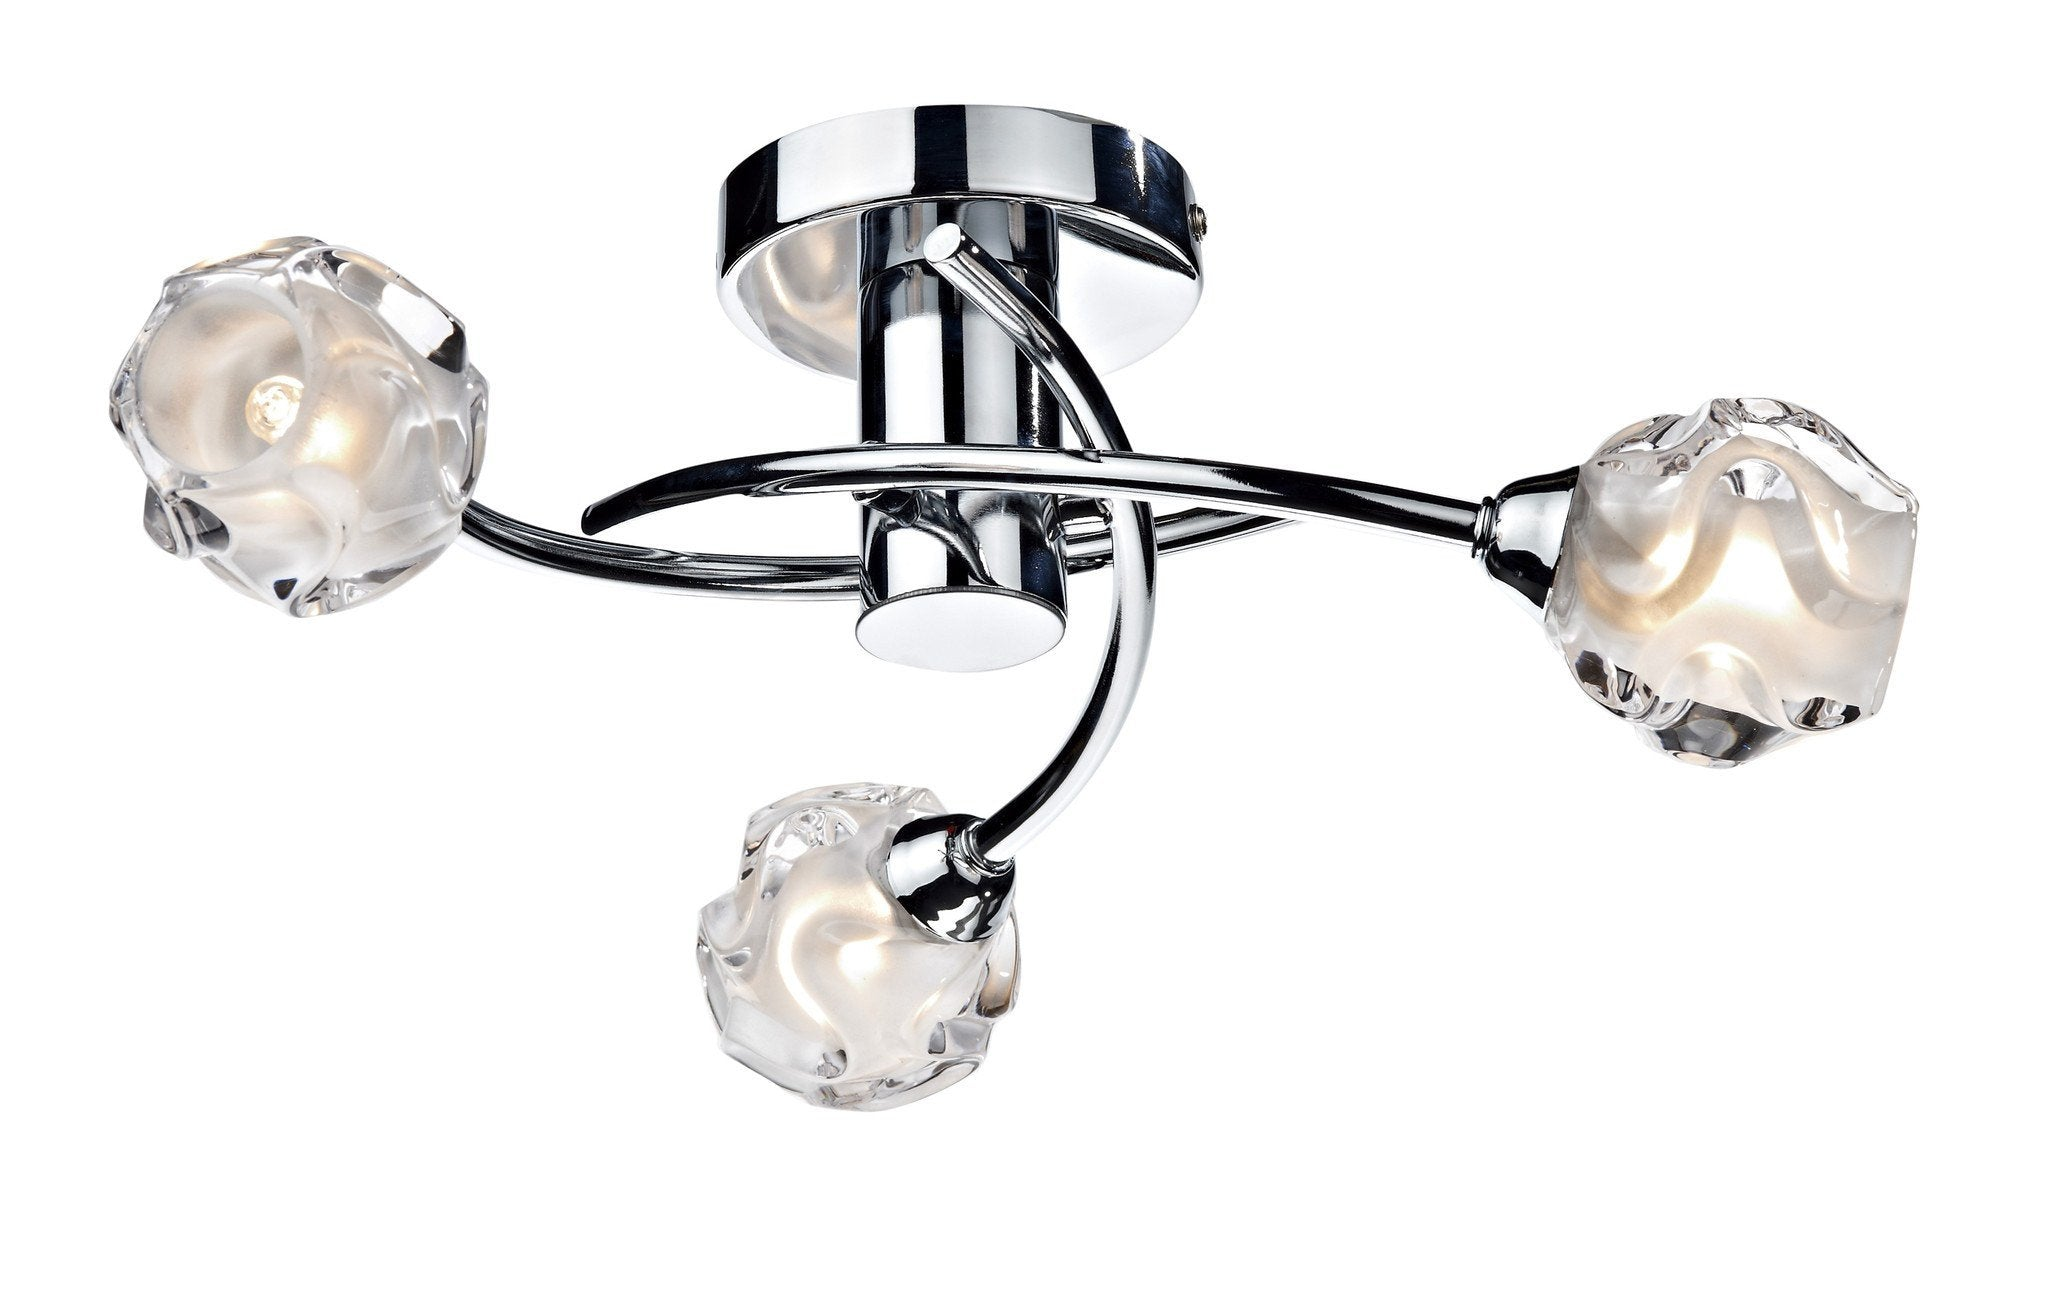 Seattle Chrome 3 Lamp Ceiling Light - London Lighting - 1